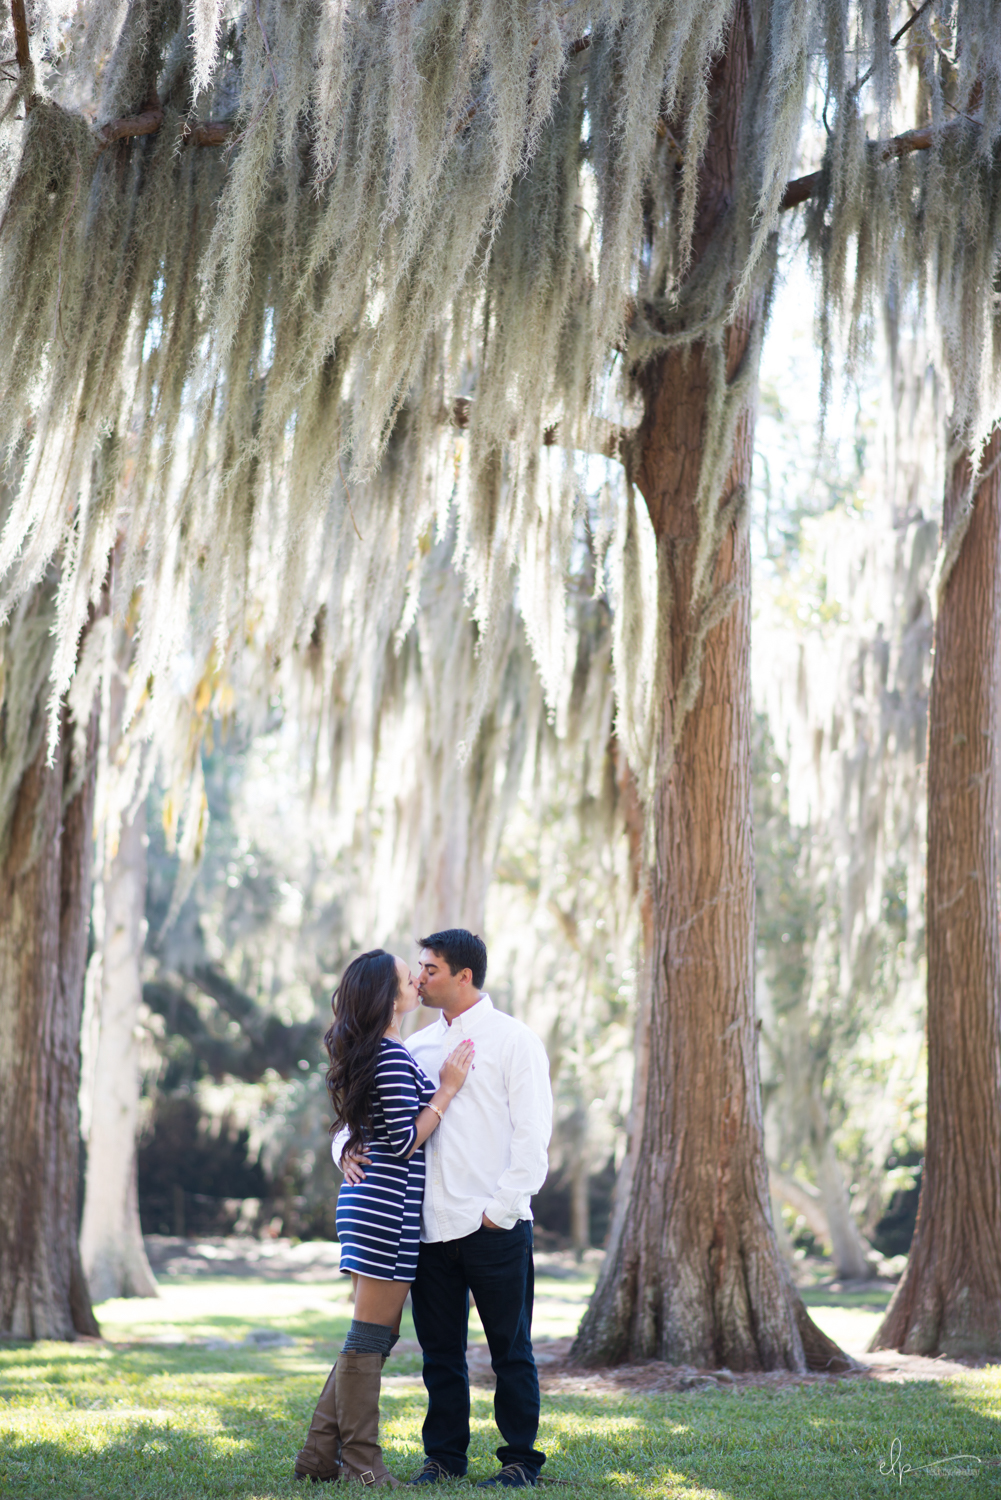 Engagement session at cypress grove park